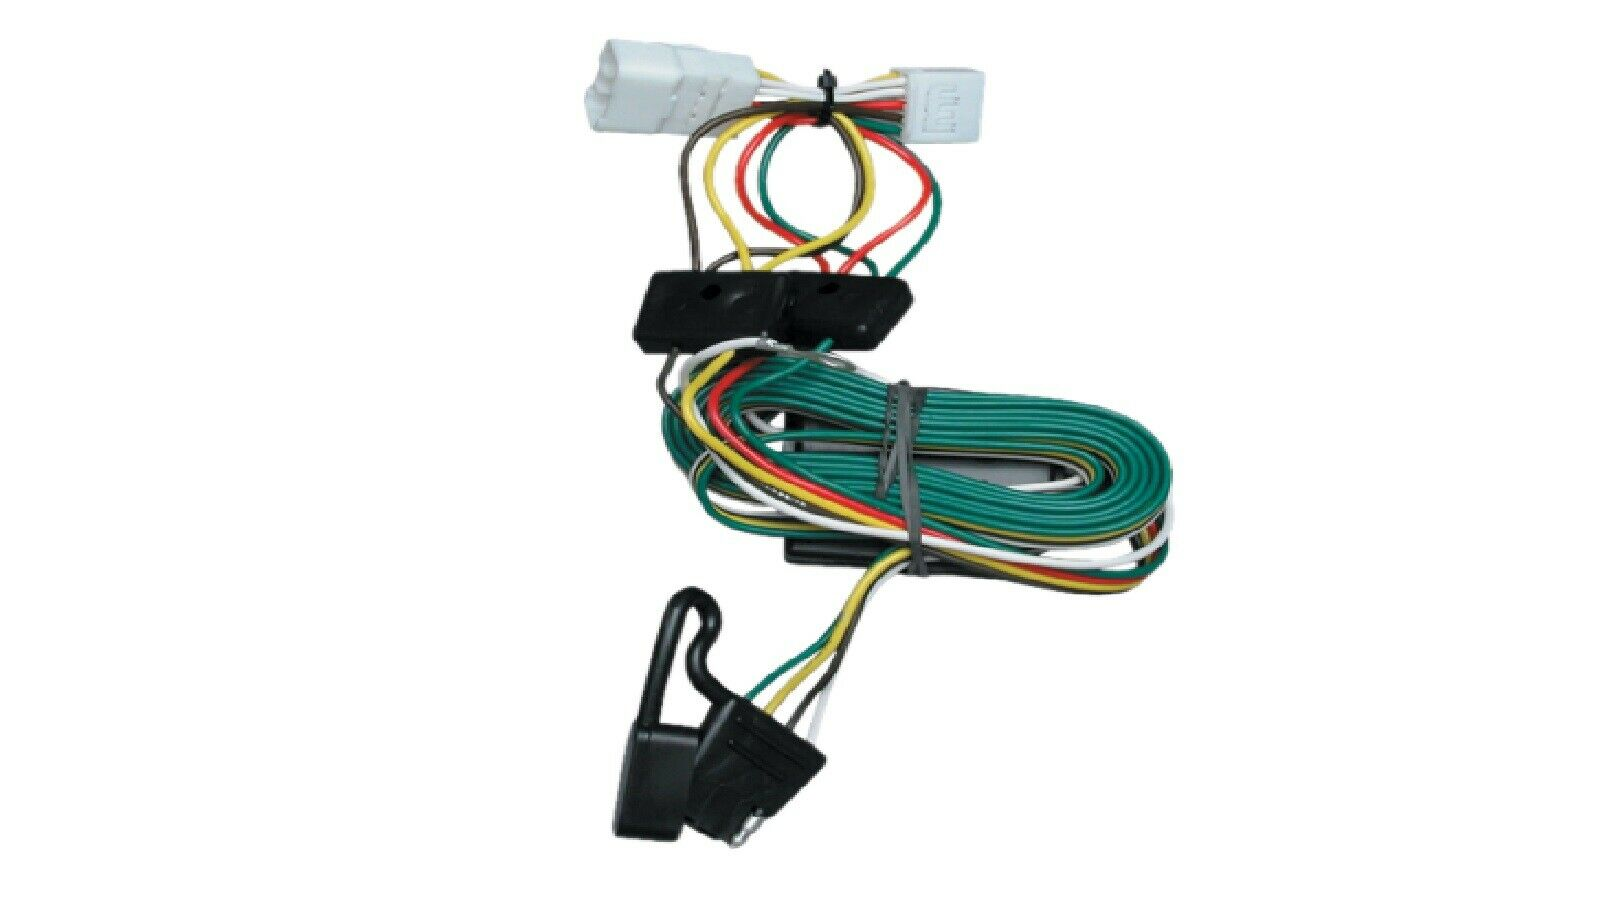 Trailer Connector Kit Wiring T One Connector Towready Fits 1997 Jeep Cherokee For Sale Online Ebay